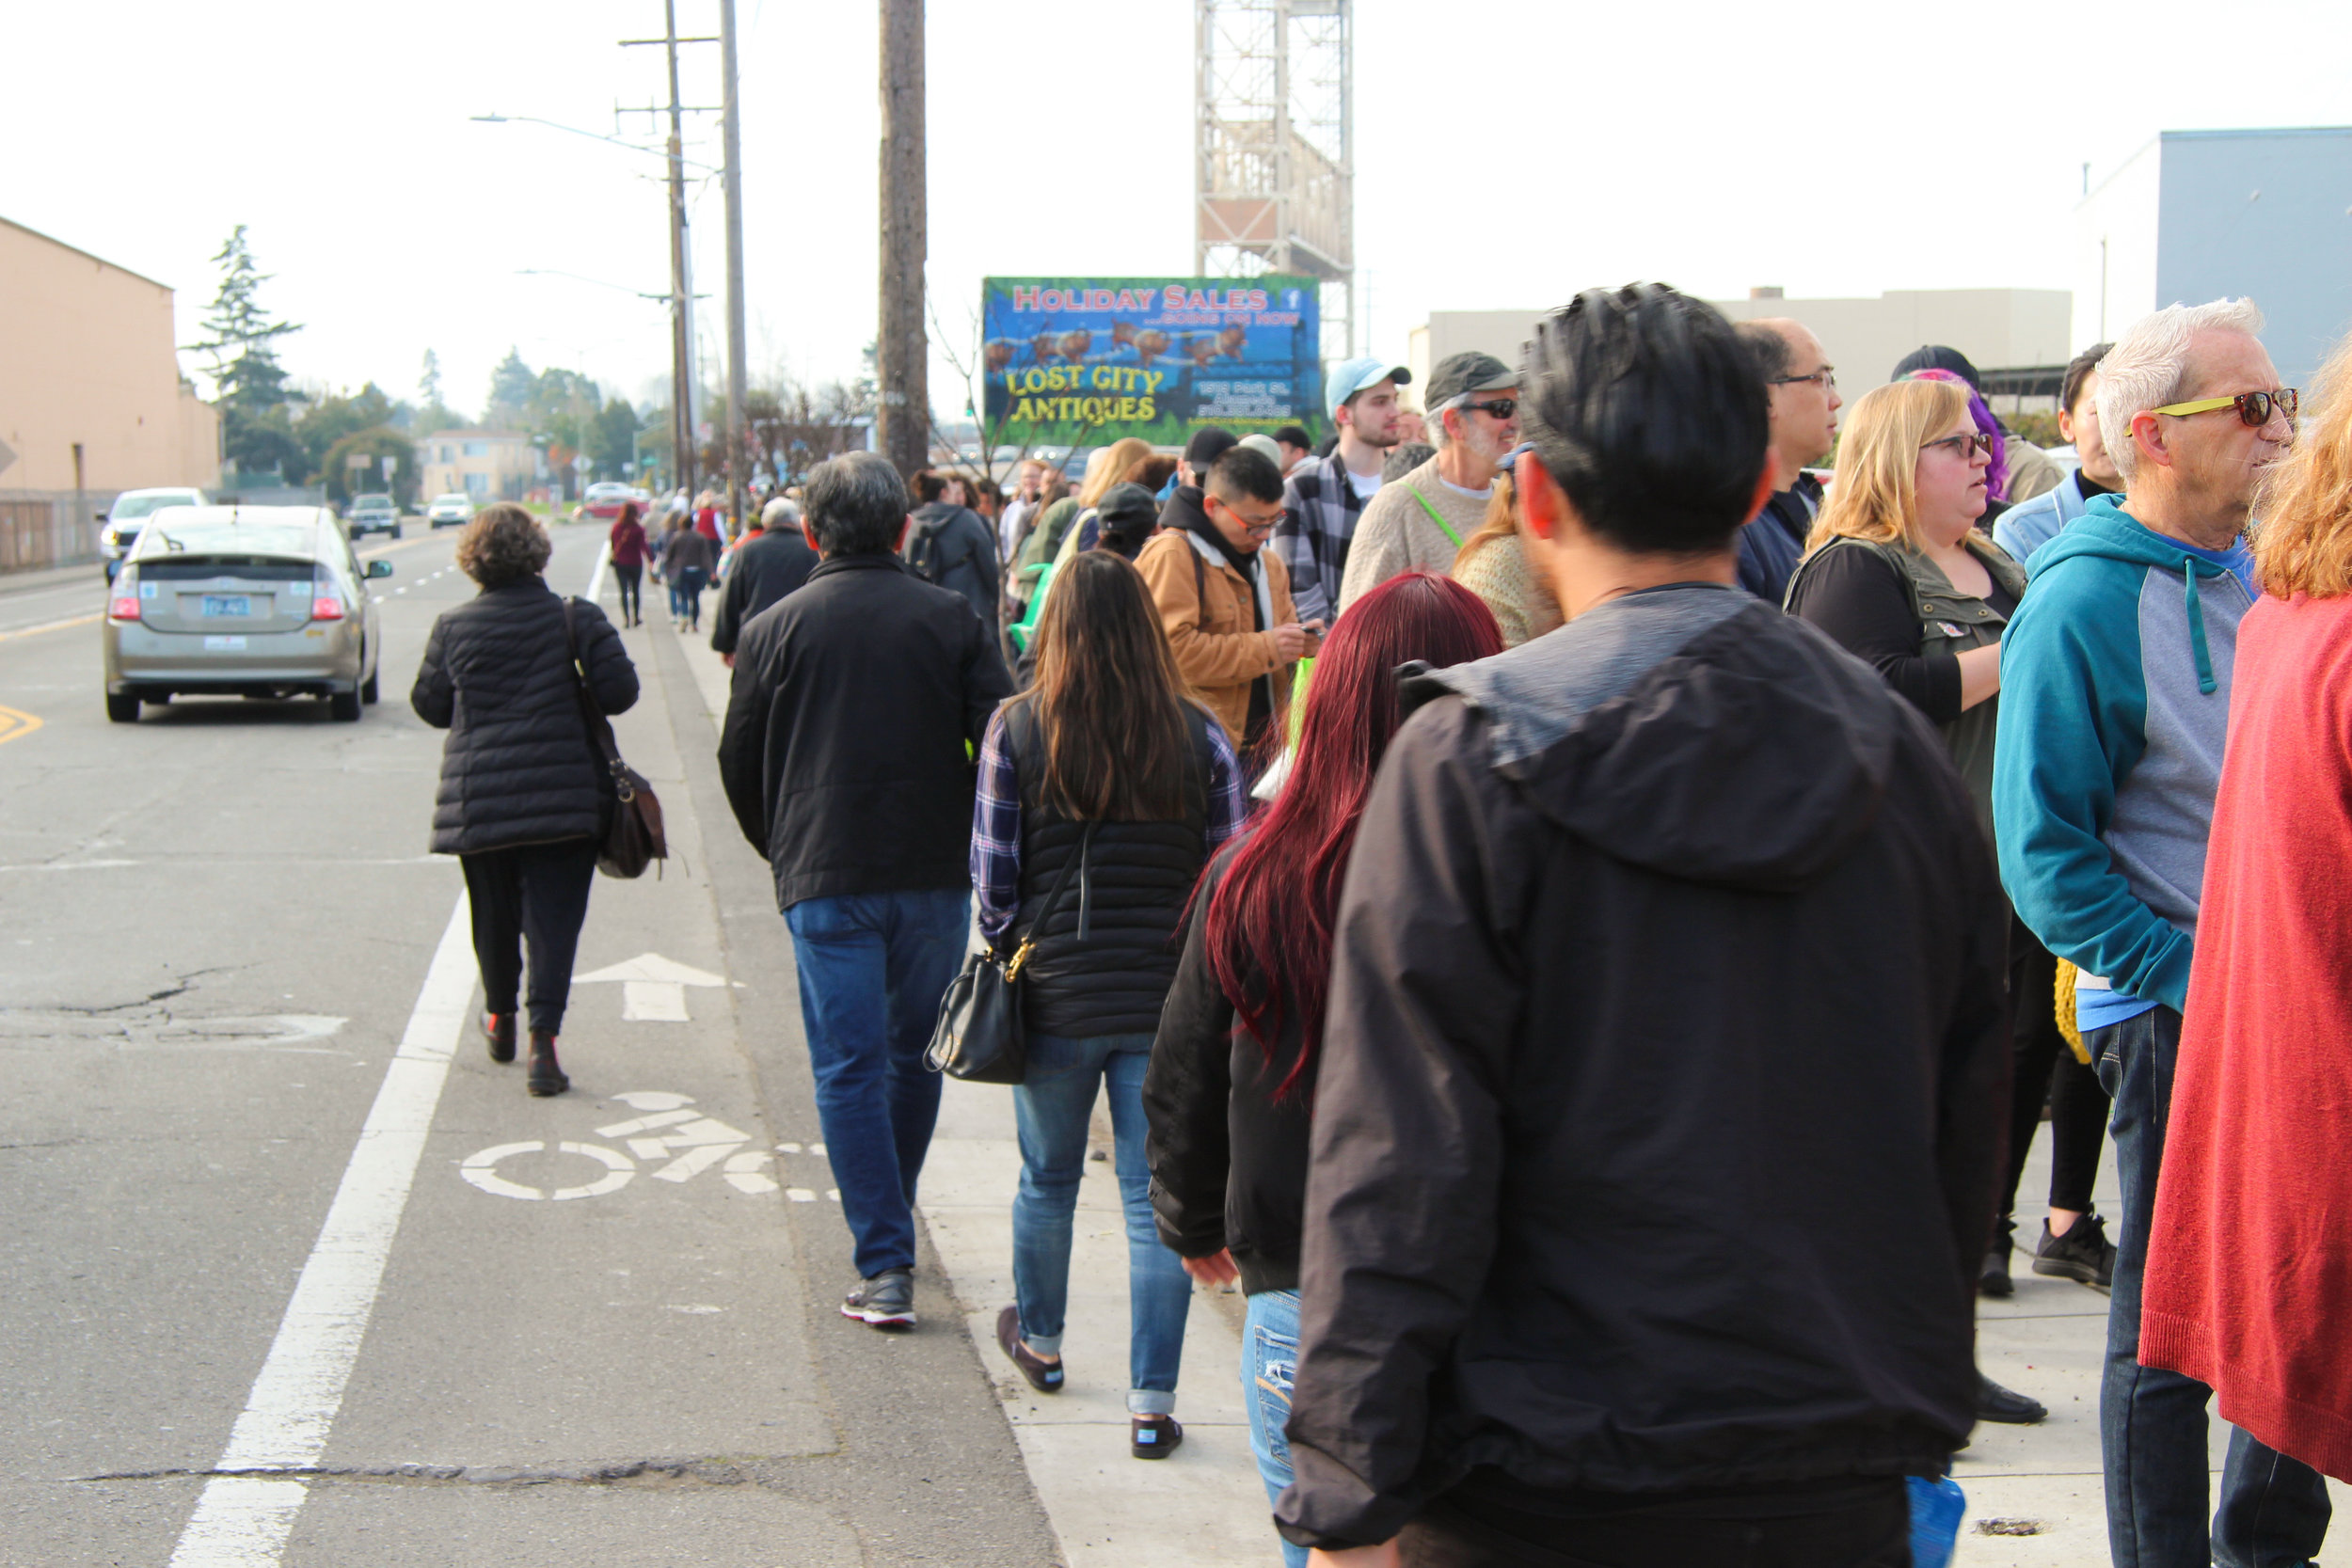 The end of the line wrapped around the block and extended down Fruitvale Avenue.